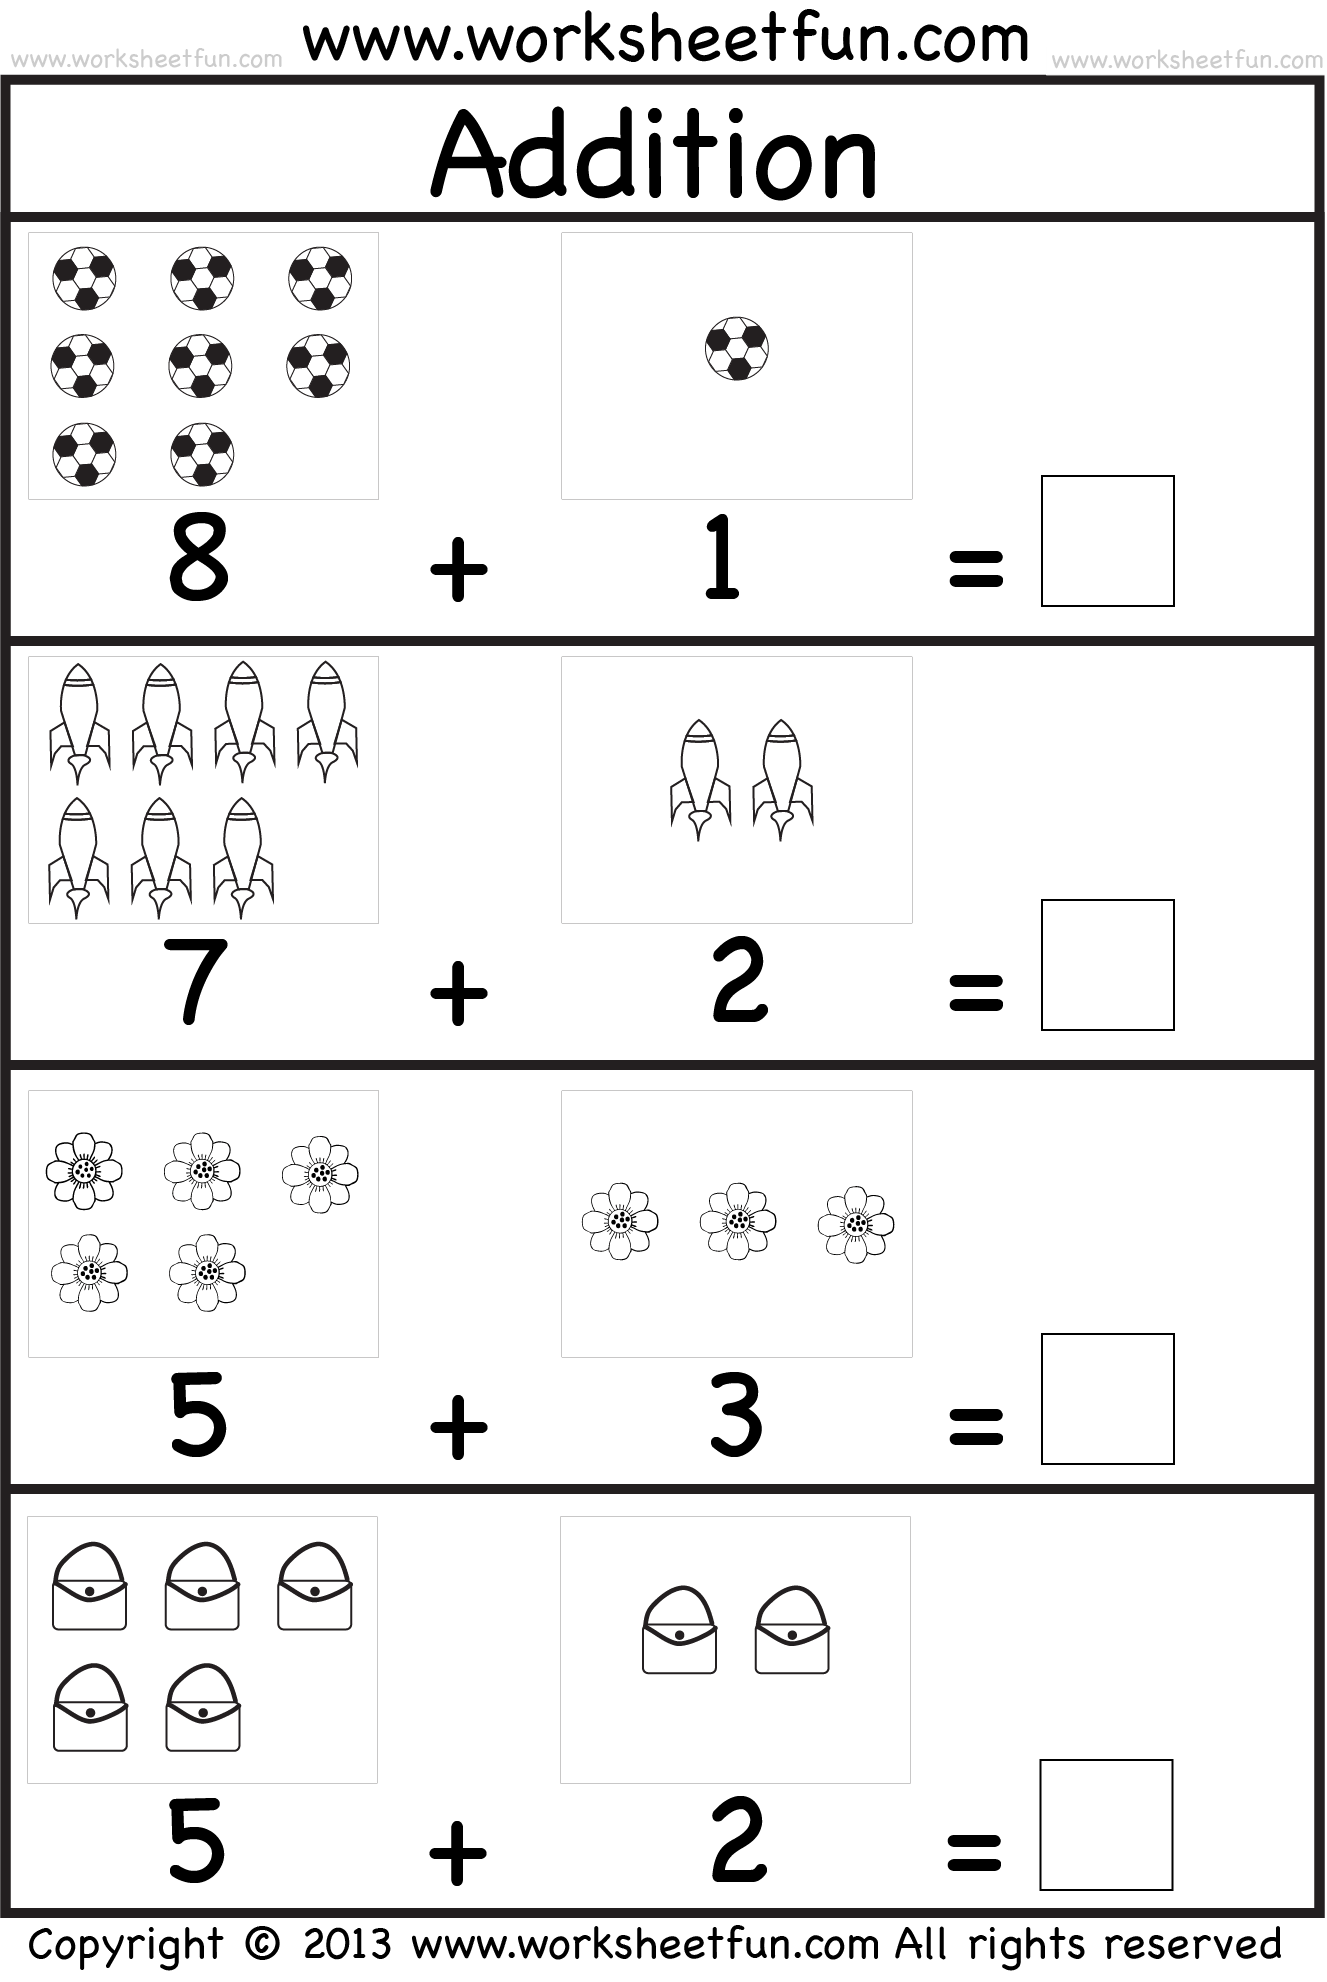 Picture Addition Beginner Addition Kindergarten Addition 5 Worksheets Free Printable